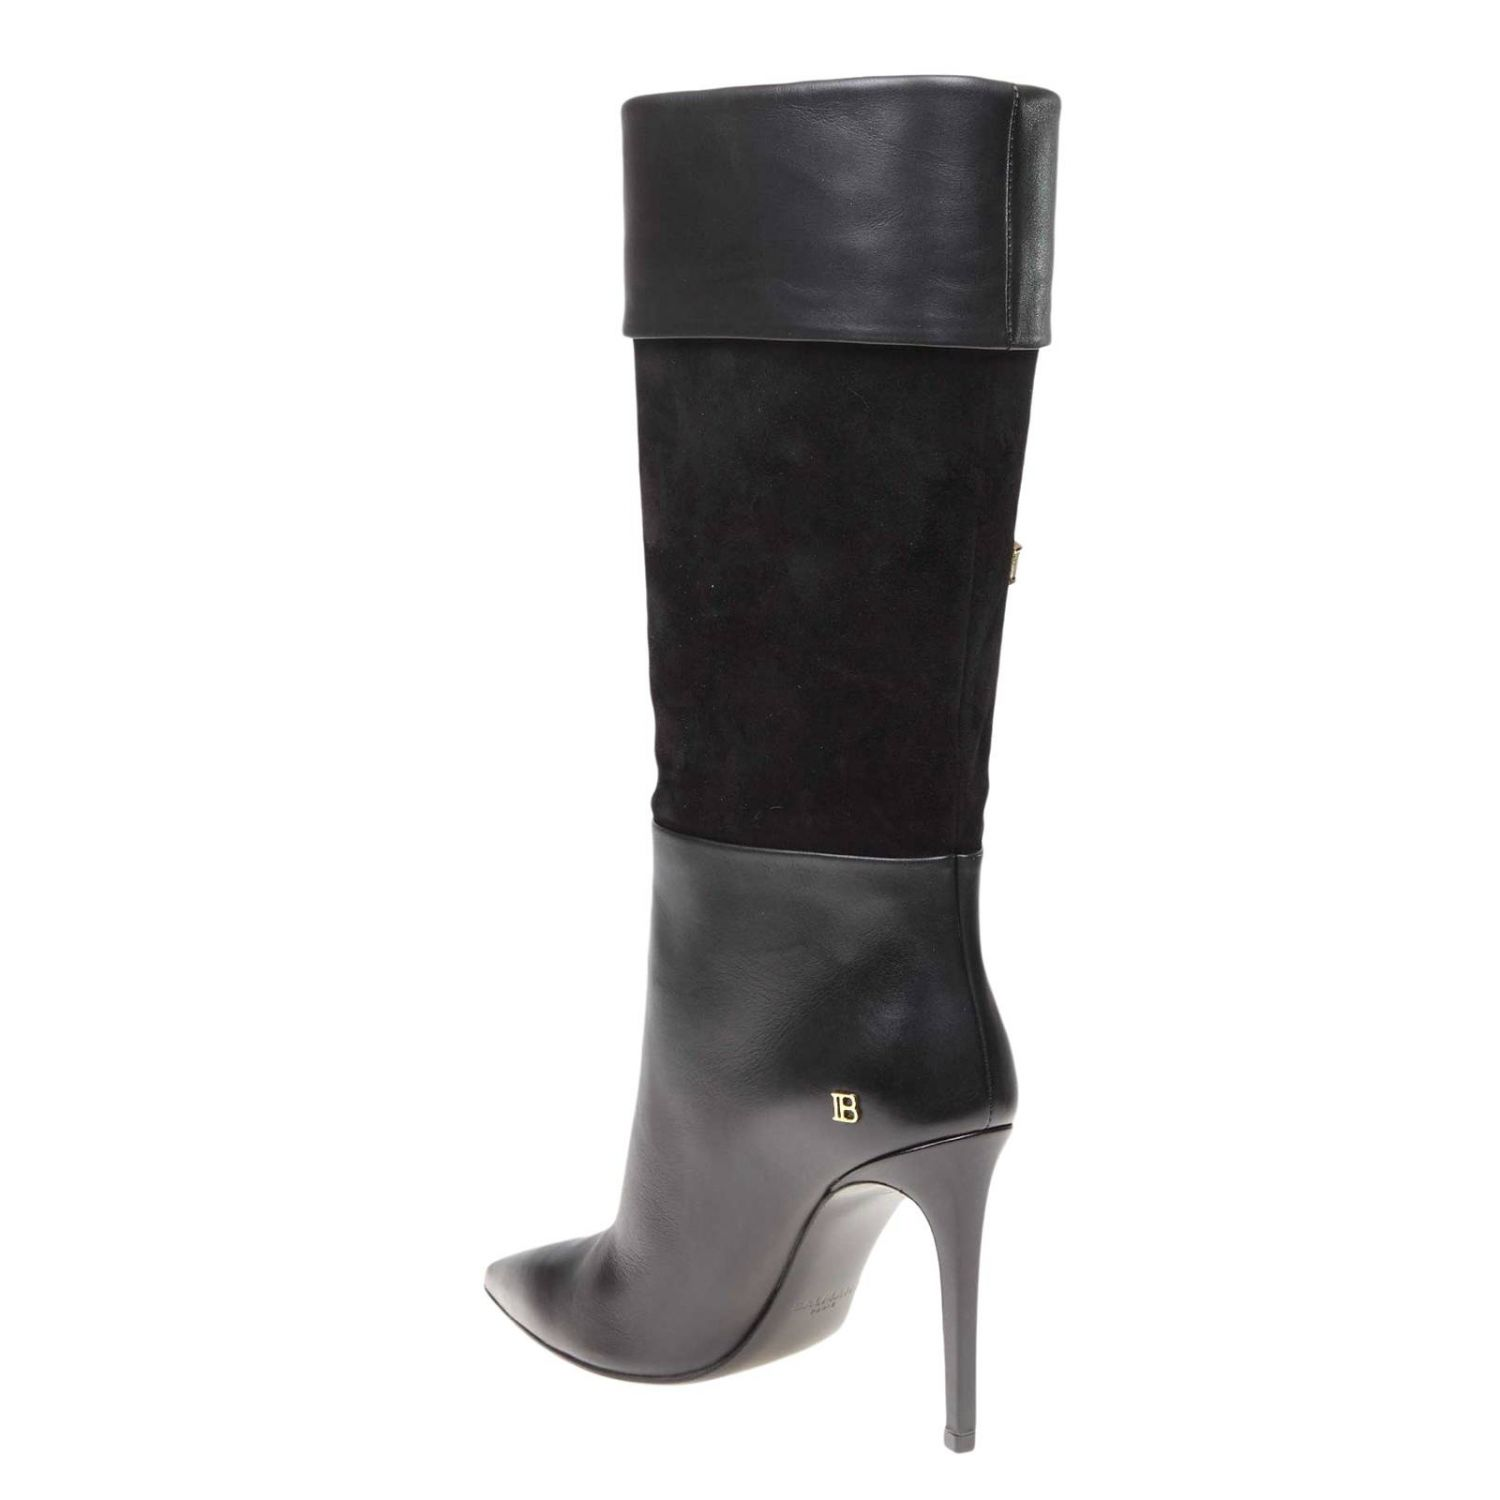 Mina Balmain smooth leather and suede boots with bow black 4